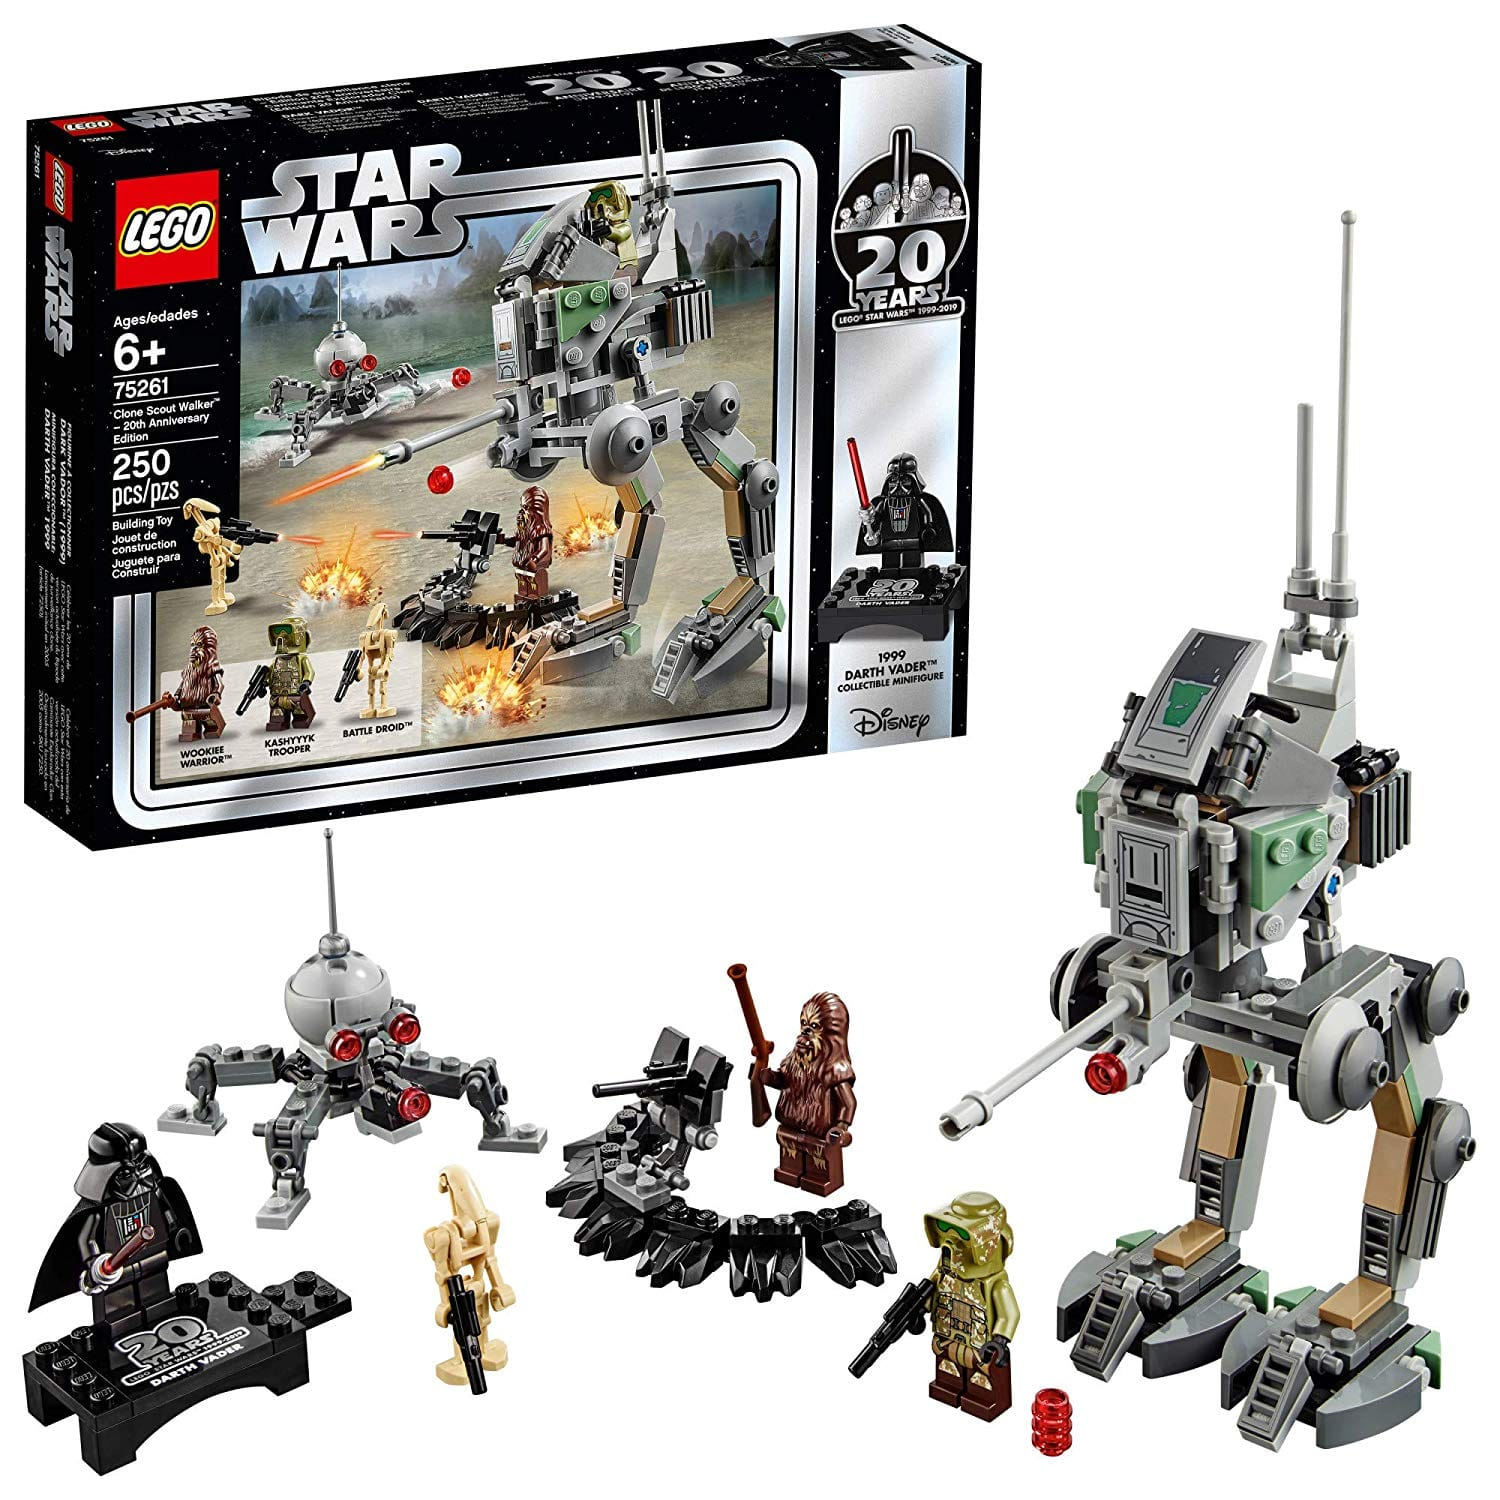 LEGO Star Wars Clone Scout Walker 20th Anniversary Edition (75261) + Free Shipping with Prime $18.99